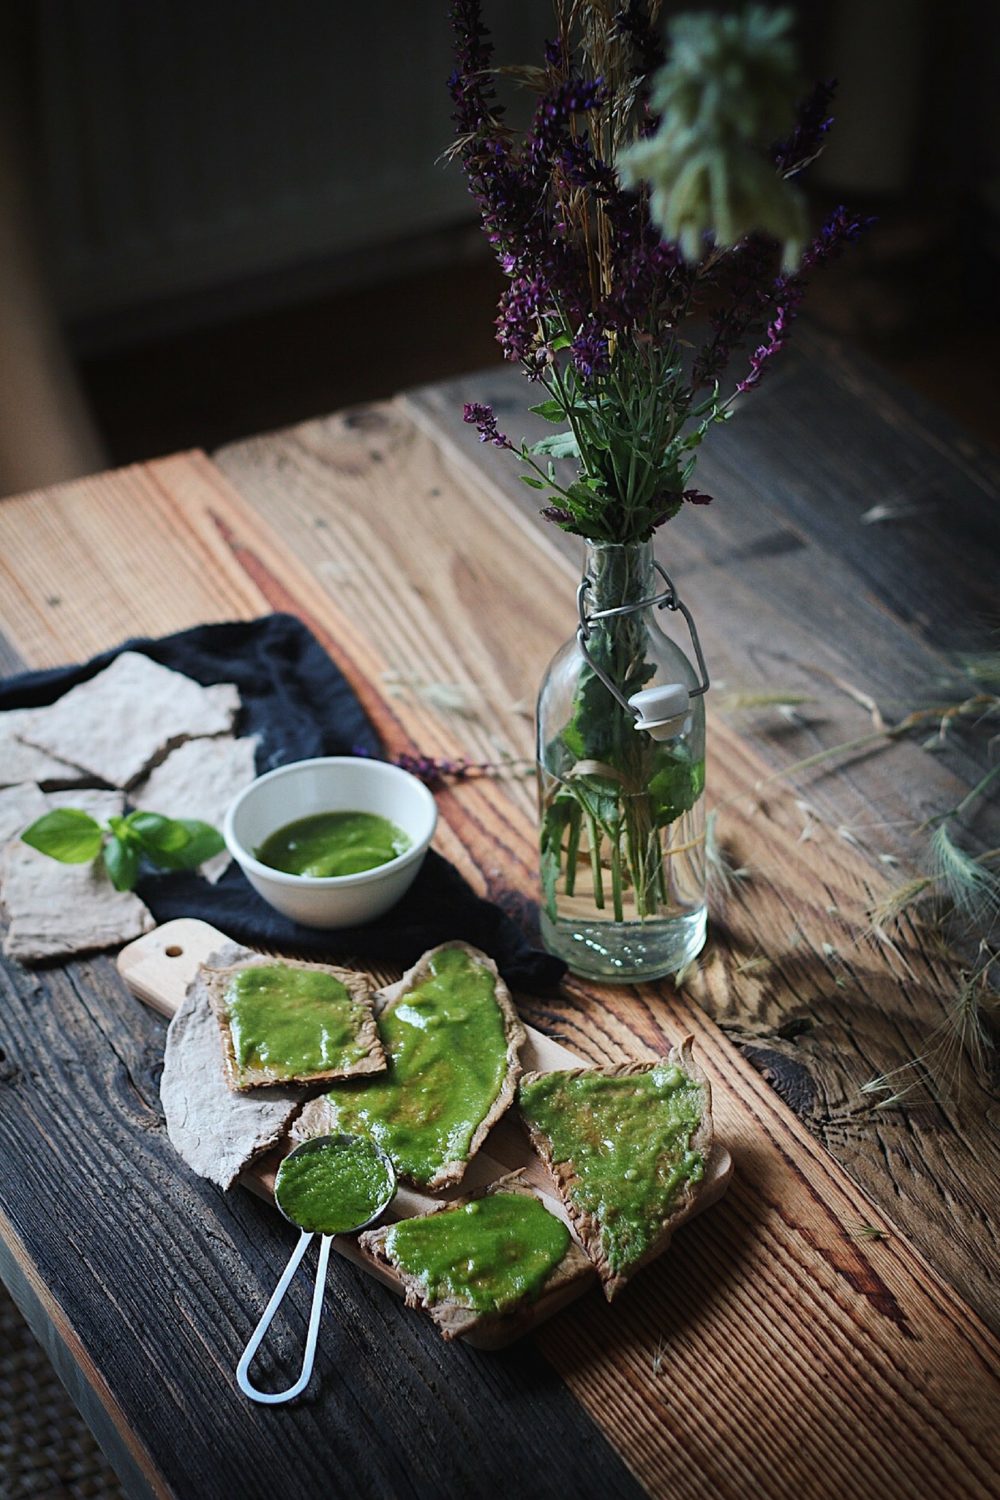 Buckwheat and Chestnut Crackers with Pesto - Fit Chick Bakery